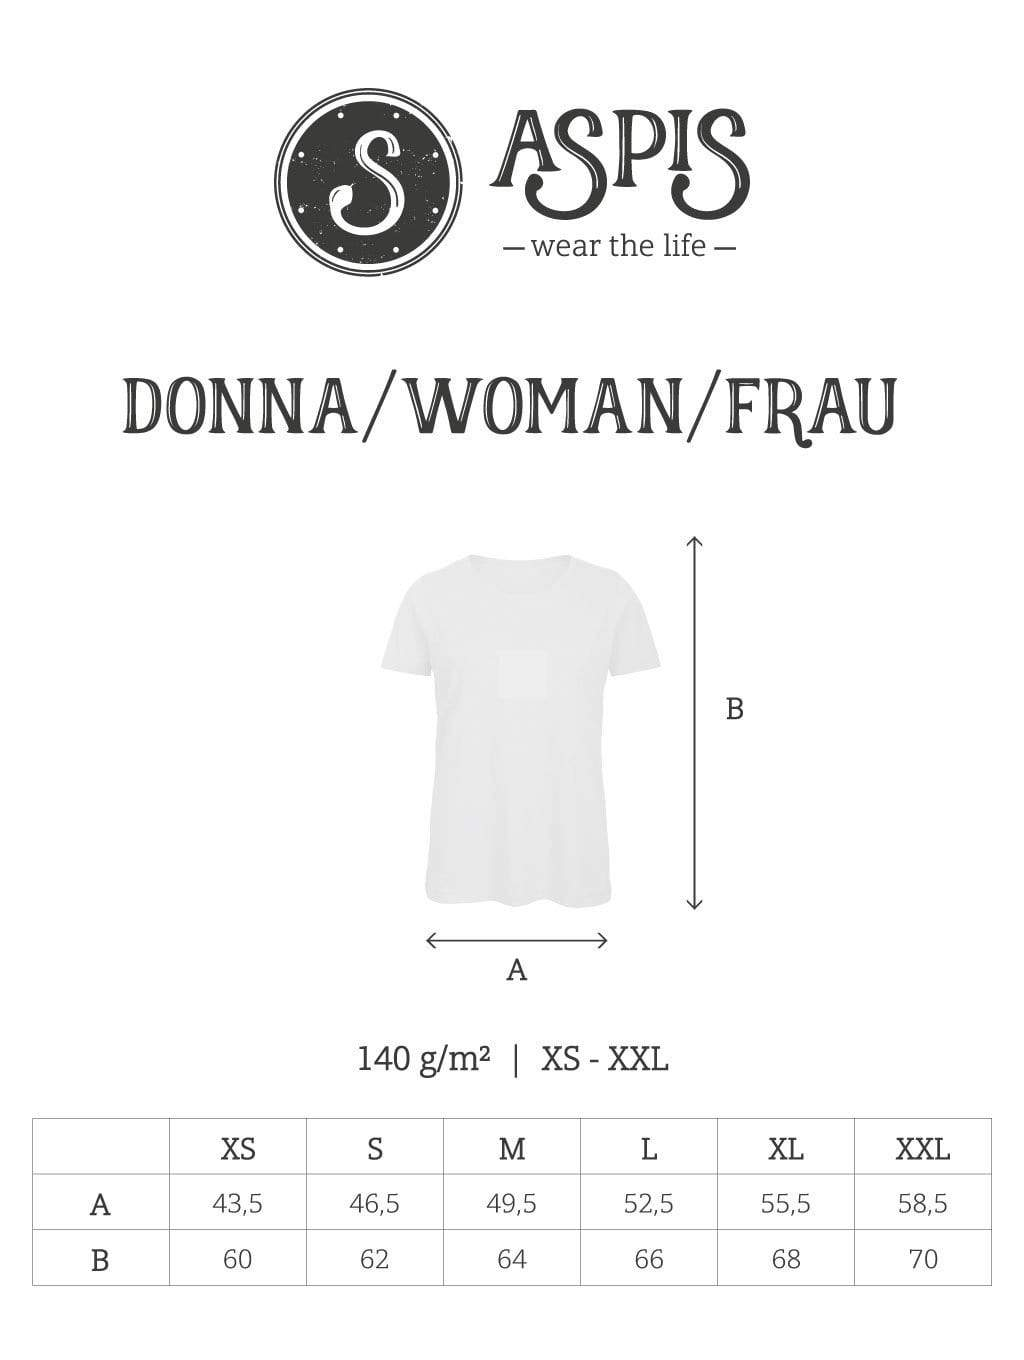 ASPISWEAR Tutti i Prodotti T-shirt KrakenFlag Donna sustainable fashion ethical fashion